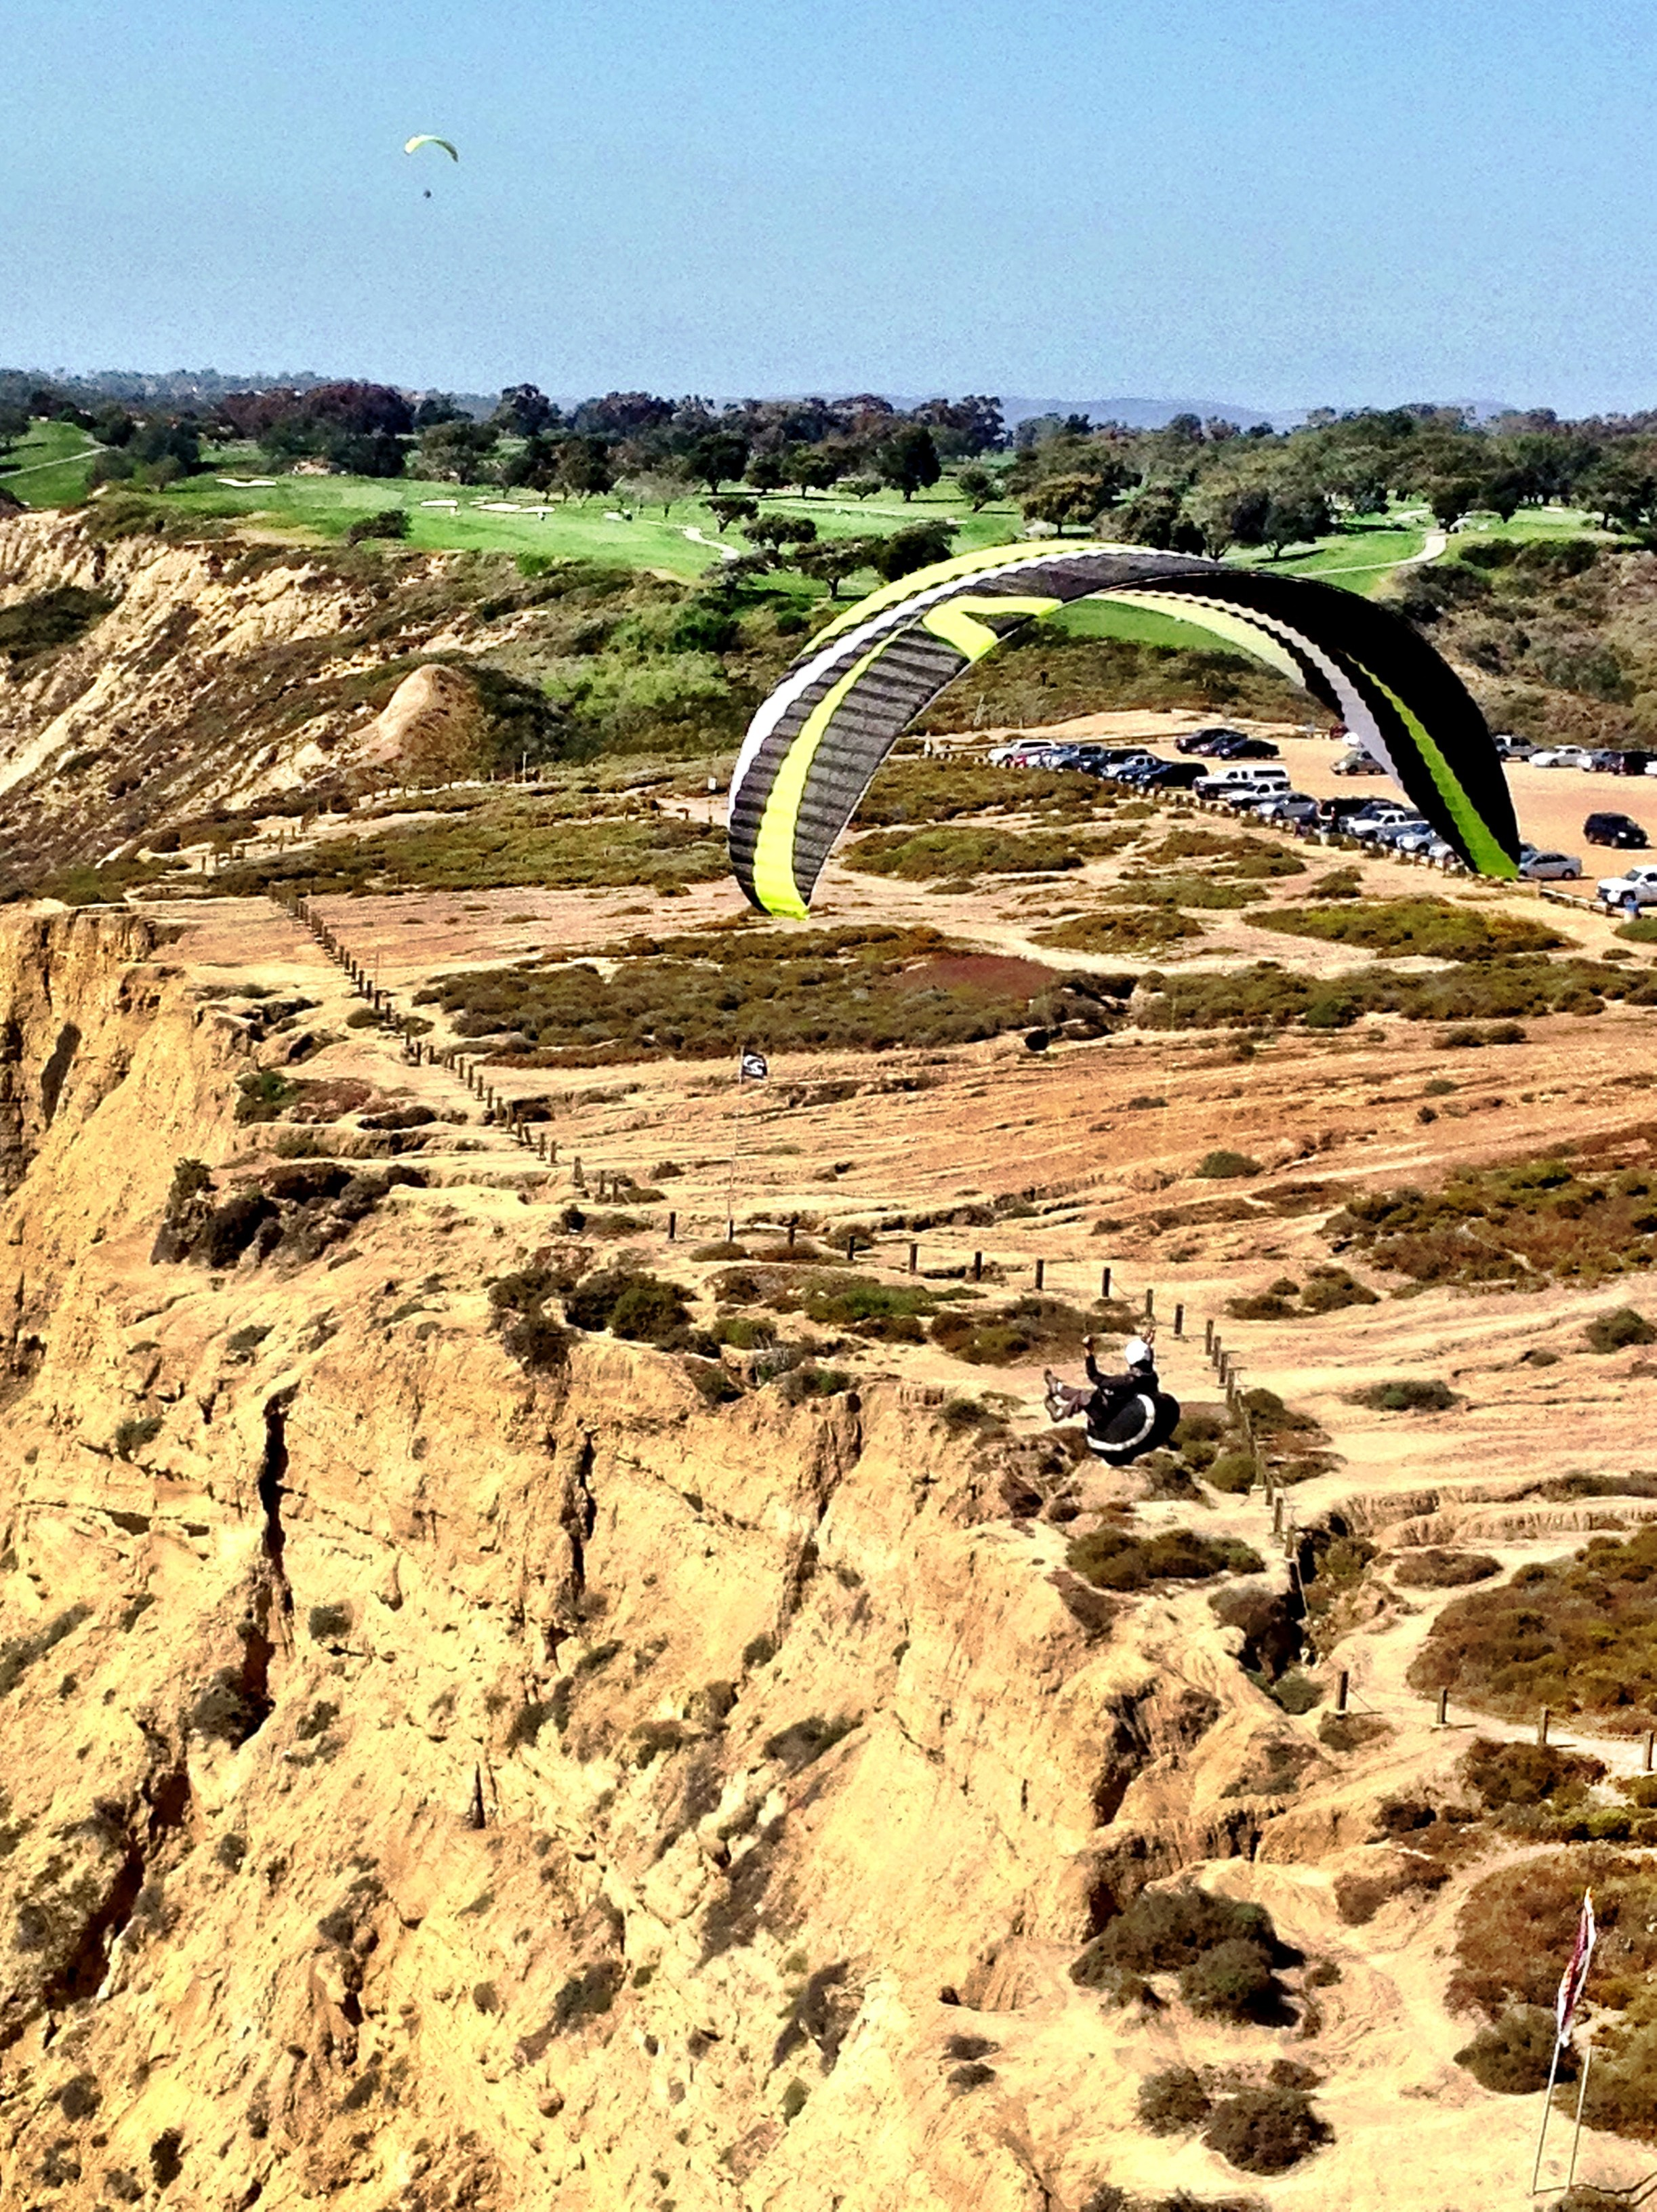 Why Paragliding in La Jolla was an Incredible Experience